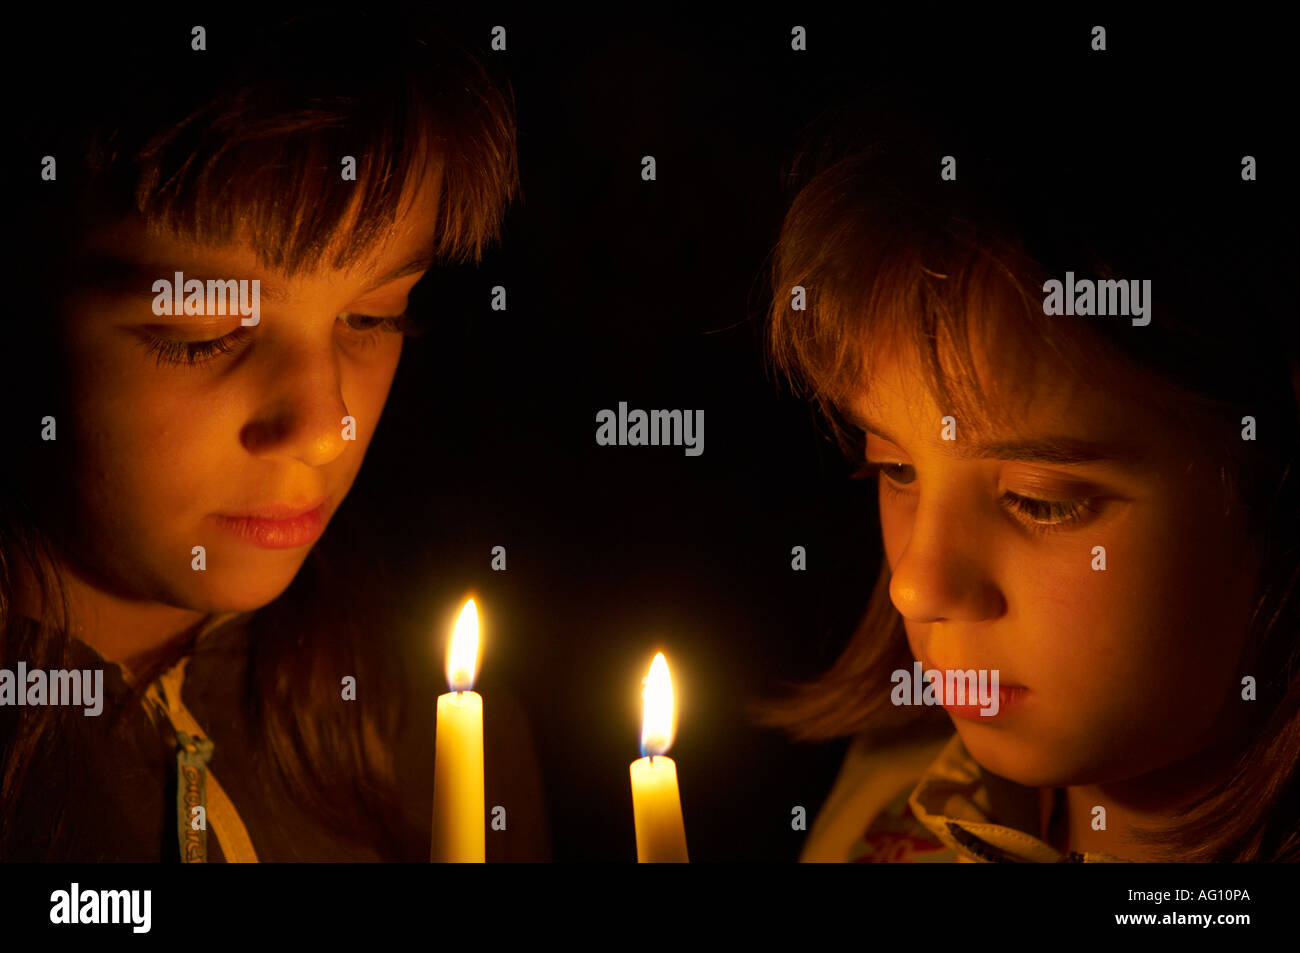 Two pre teen sisters in Brownie uniforms holding lit candles. - Stock Image